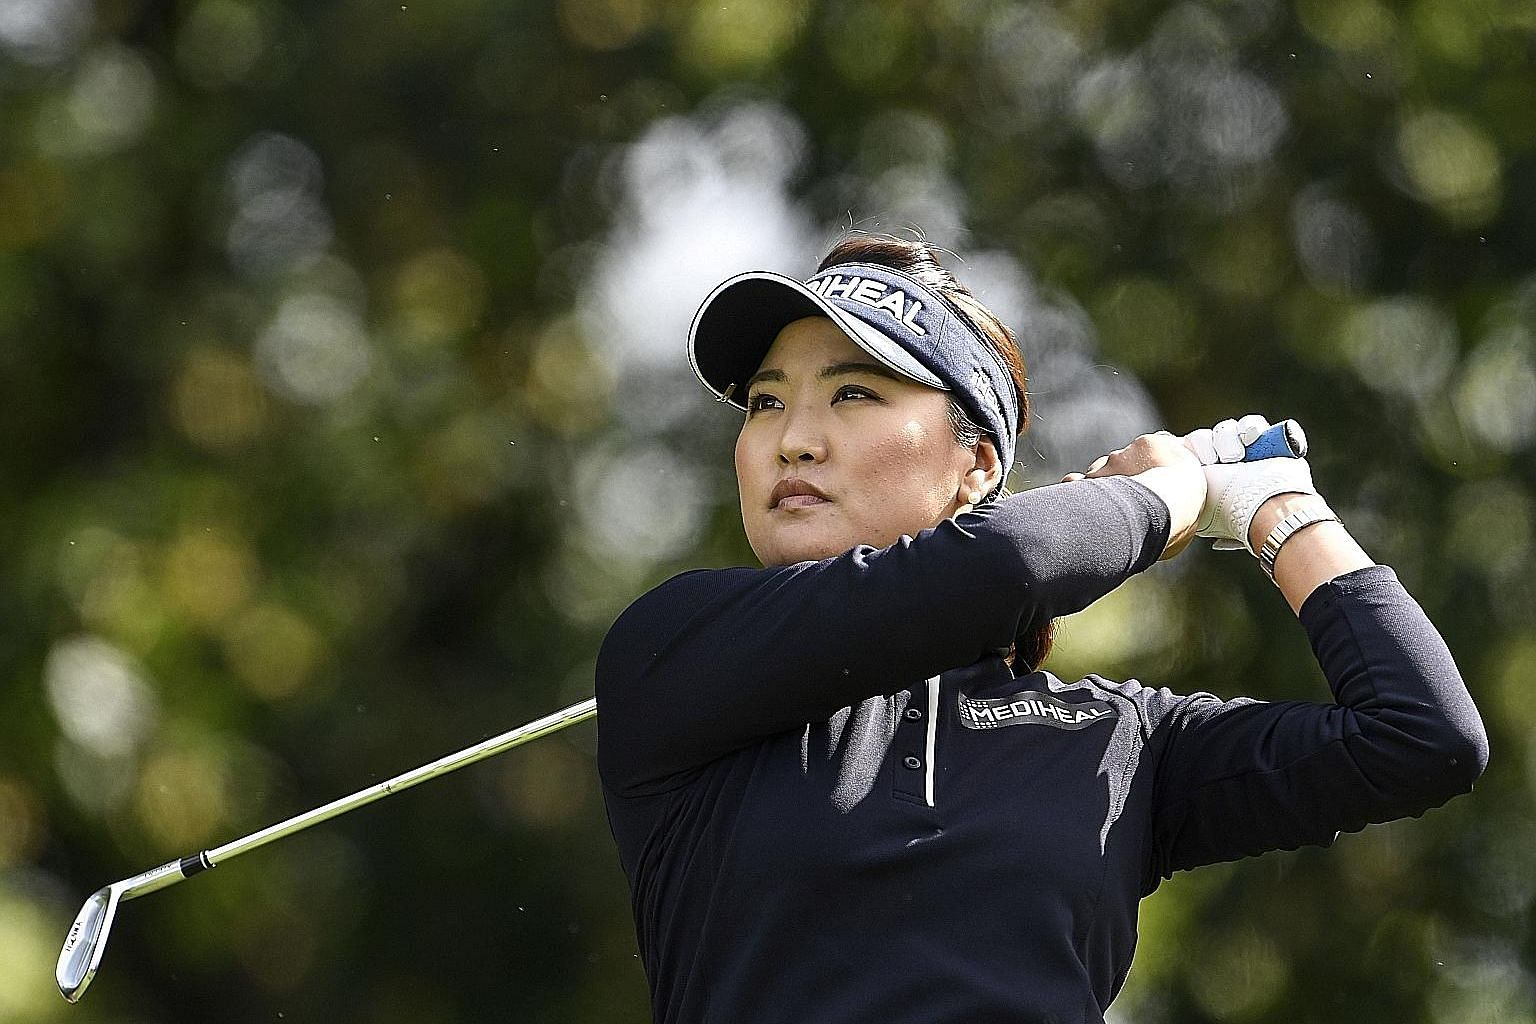 World No. 1 Ryu So Yeon at last month's Evian Championship. Eight of the top 10 women in the rankings would be eligible to play for the International team if the Presidents Cup became mixed-gender.